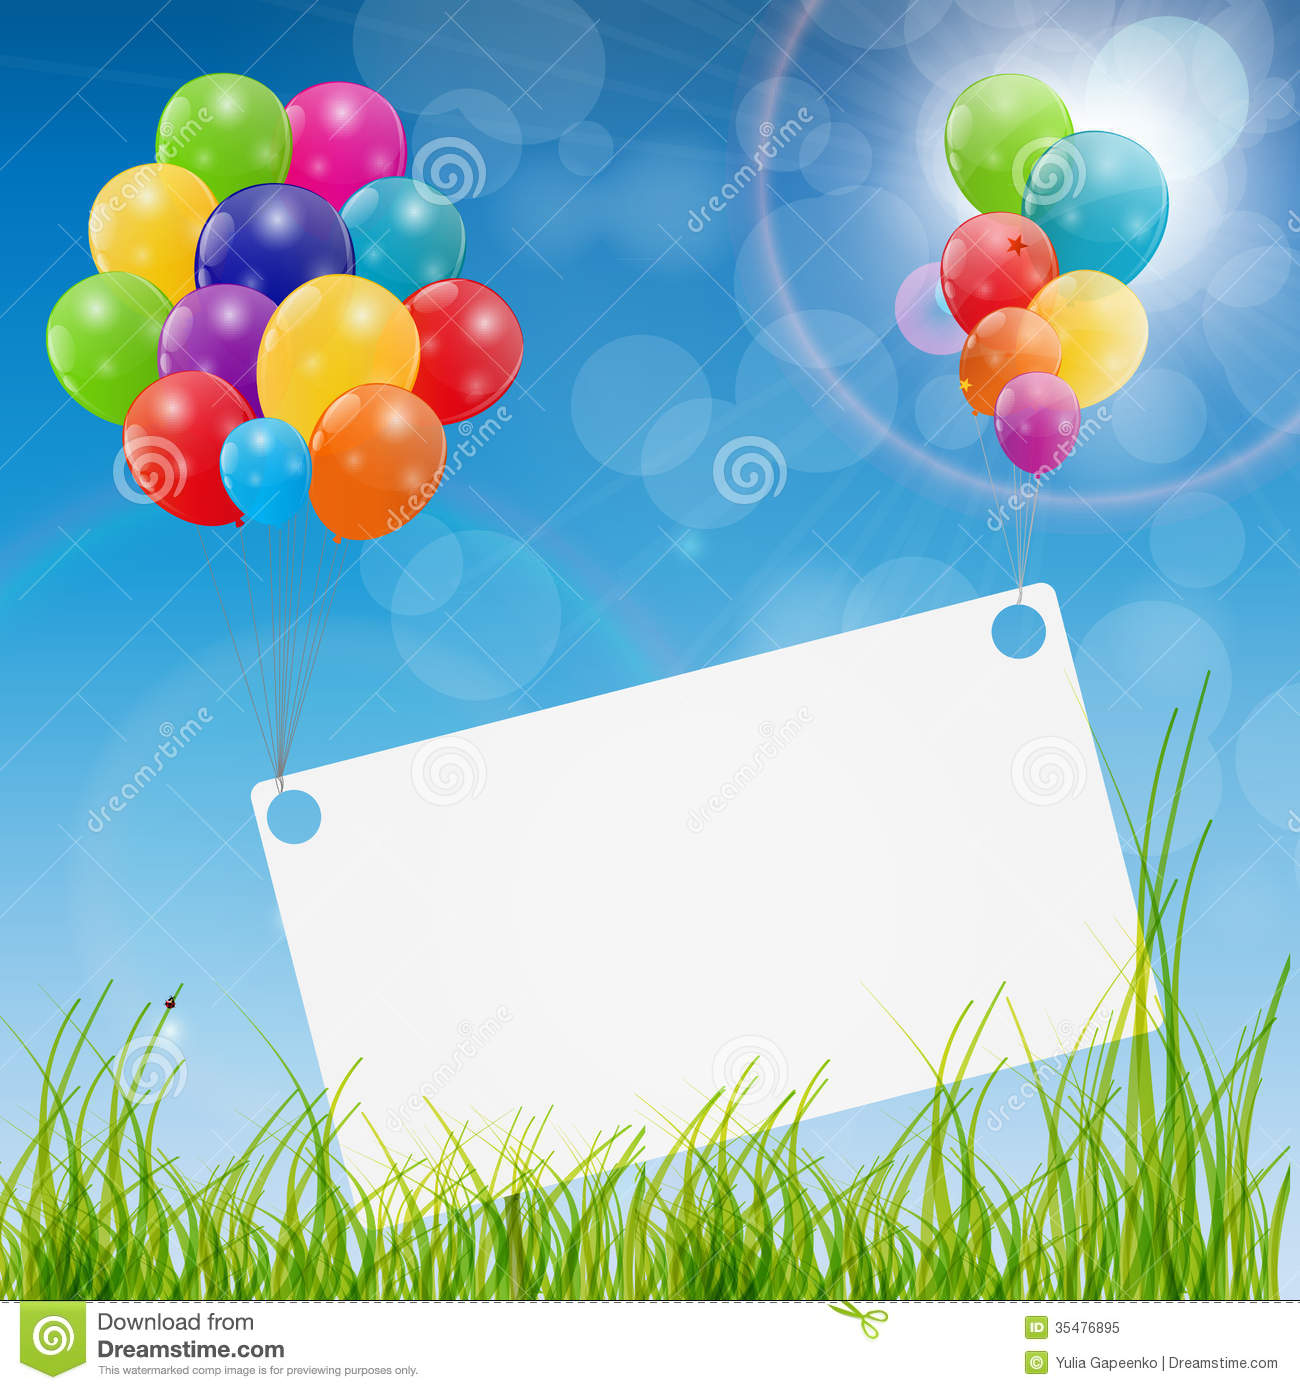 birthday greetings background image ; color-glossy-balloons-birthday-card-background-vector-illustration-35476895